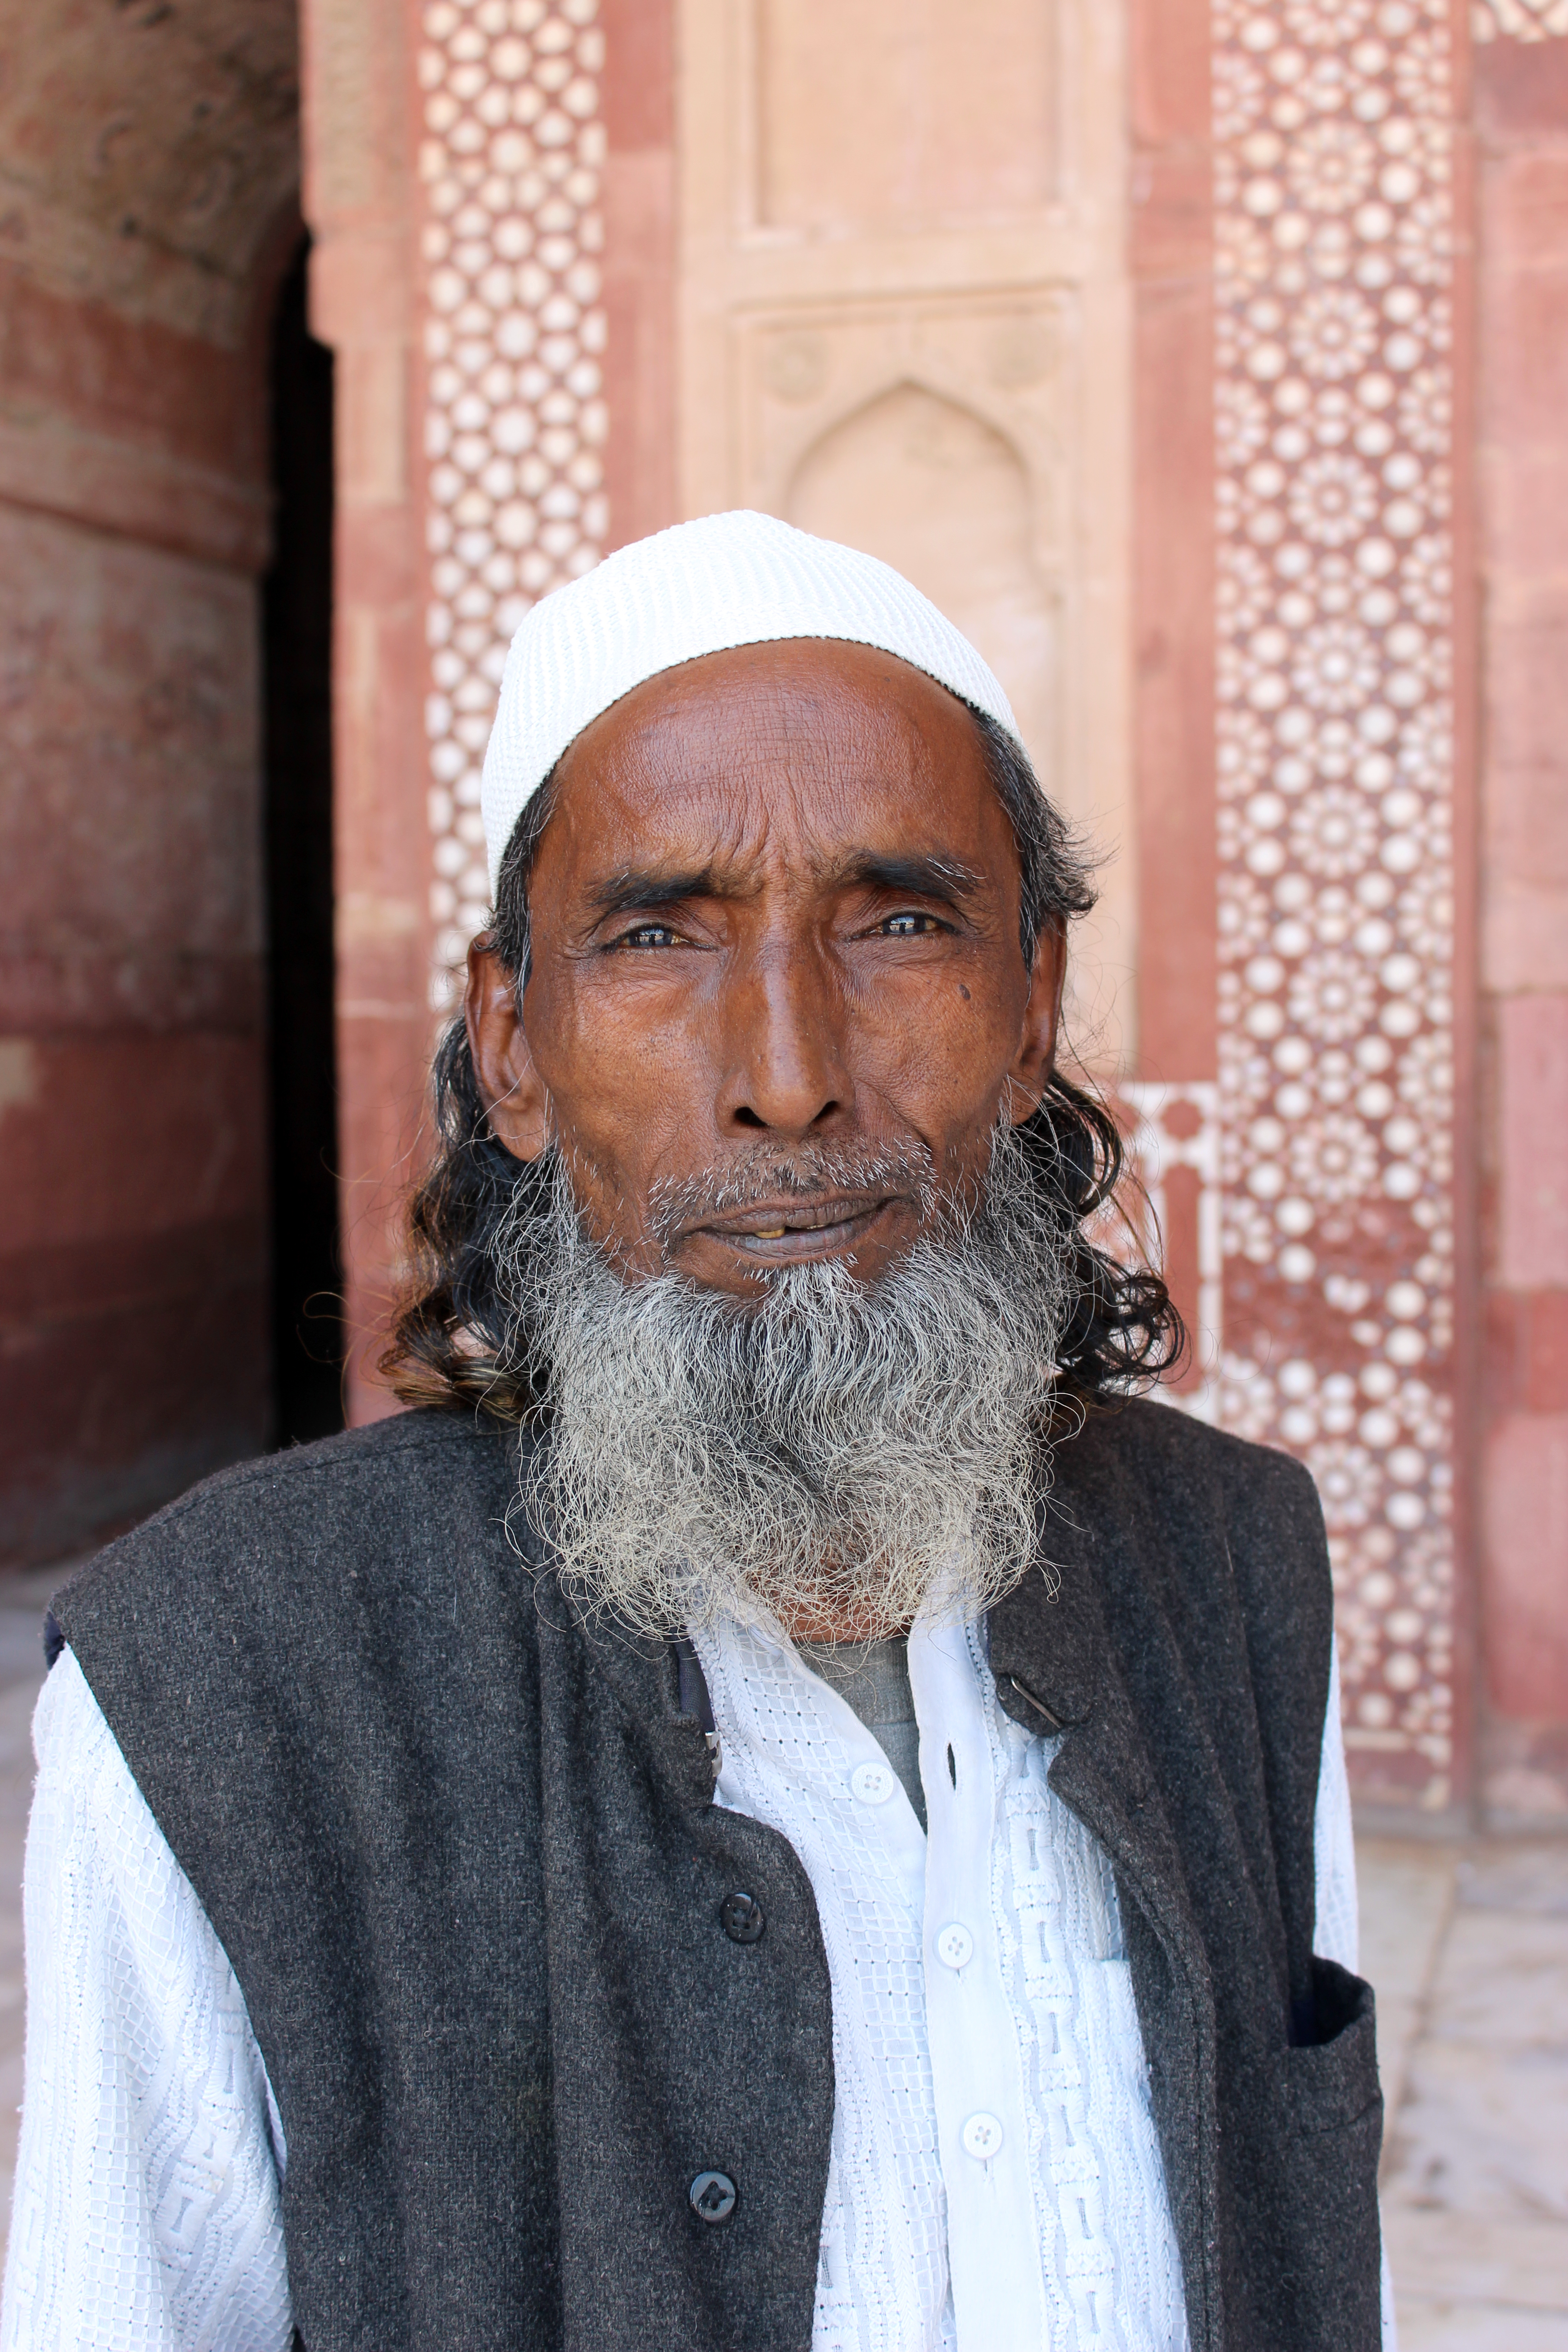 File:Old Muslim man 1 in India.jpg - Wikimedia Commons